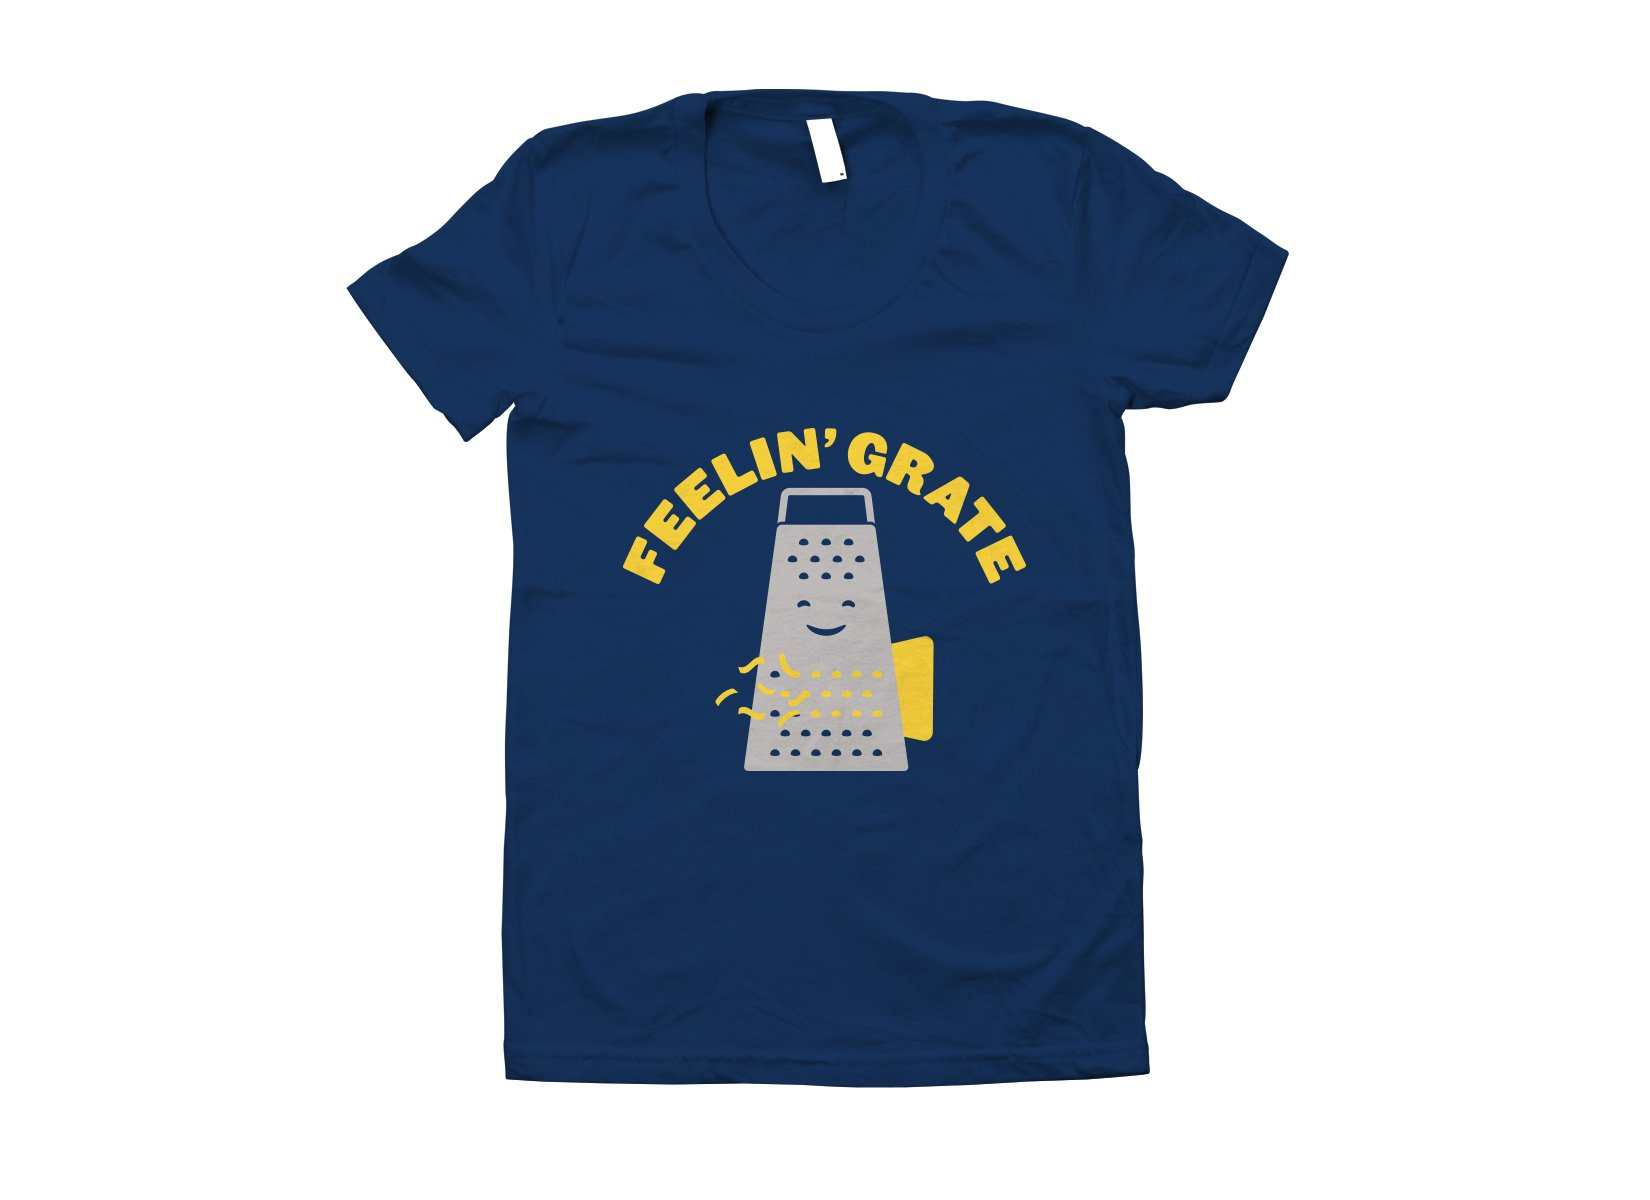 Feelin' Grate on Juniors T-Shirt